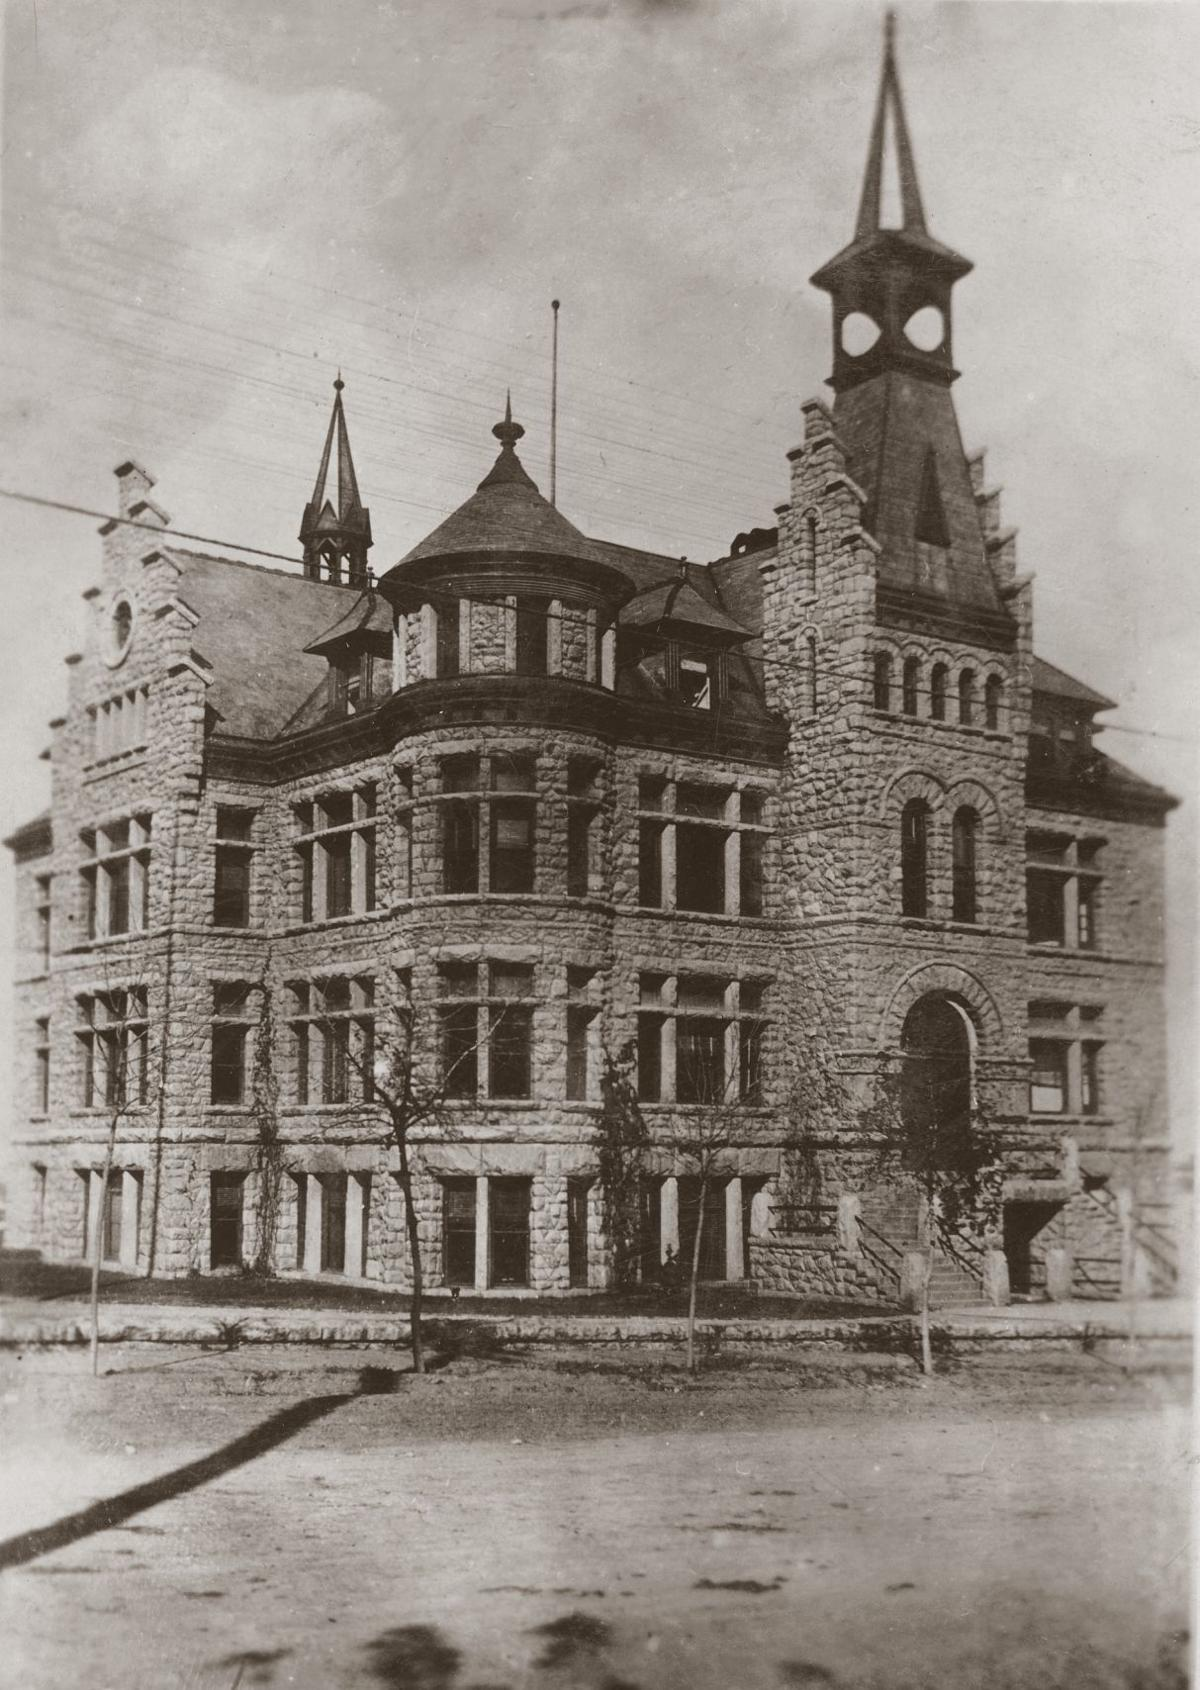 The first Helena High School - One time use granted